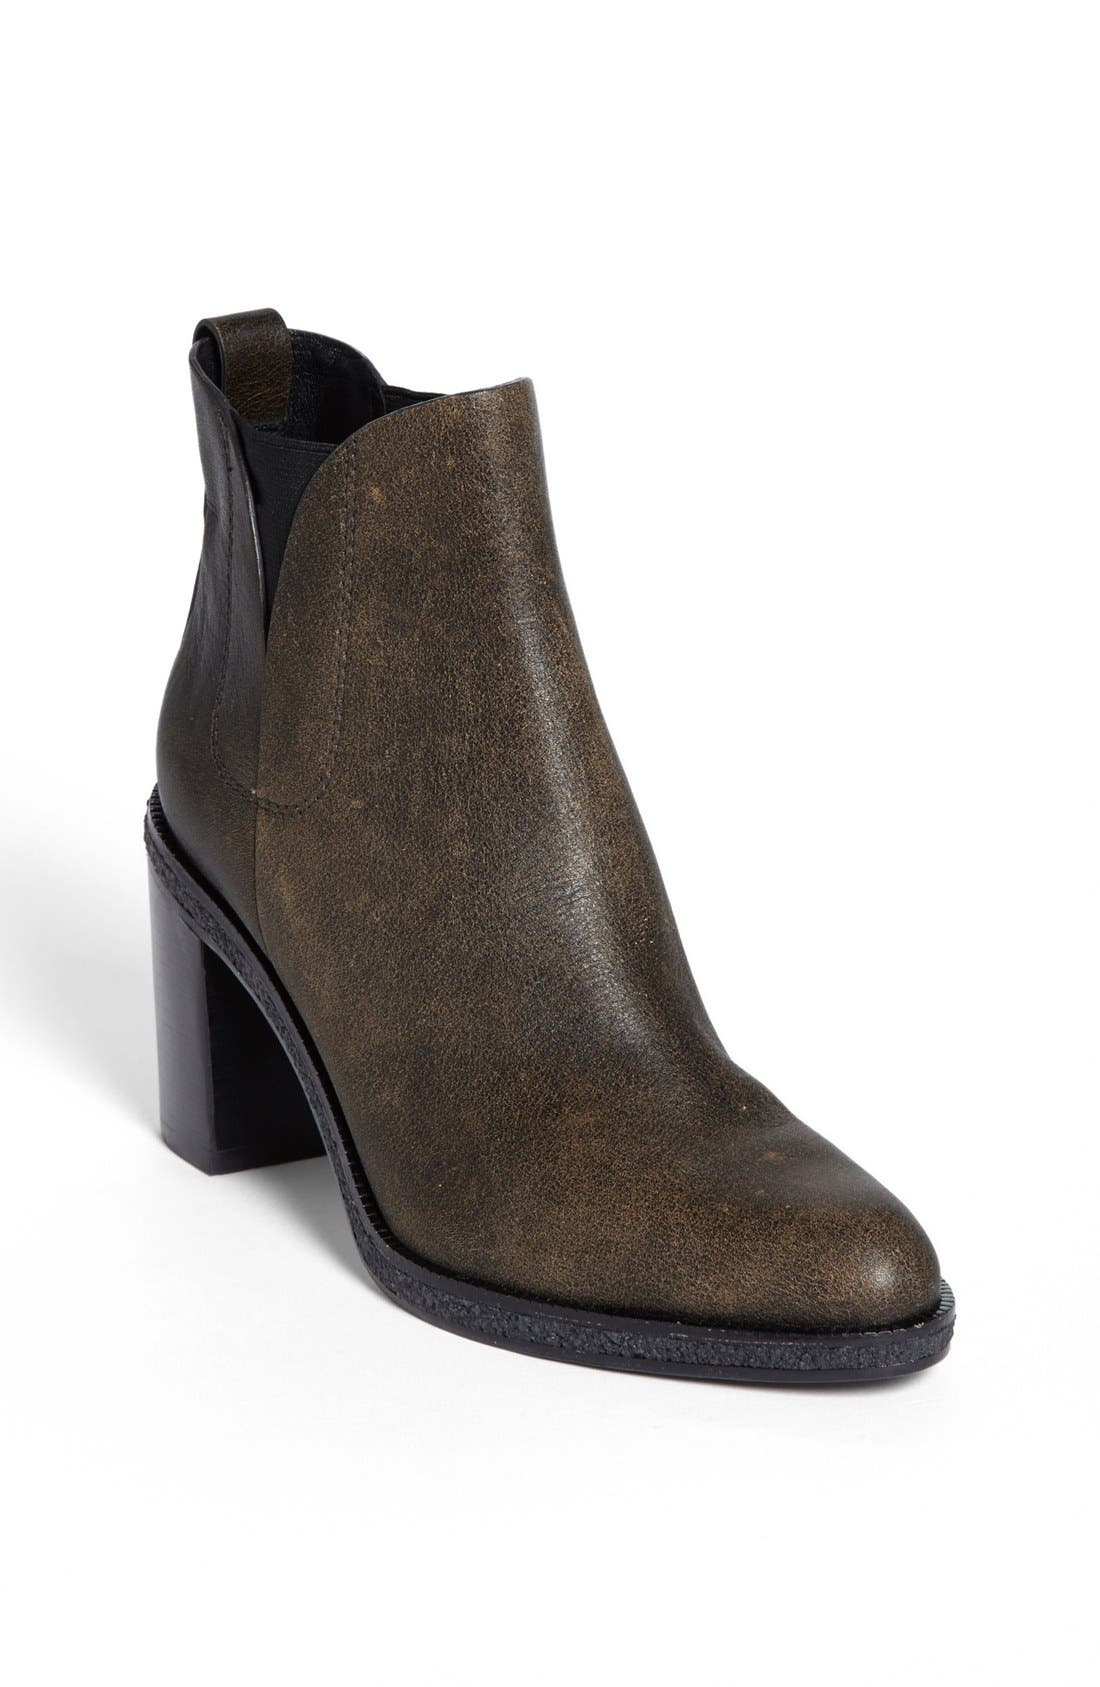 Alternate Image 1 Selected - Alexander Wang 'Irina' Ankle Boot